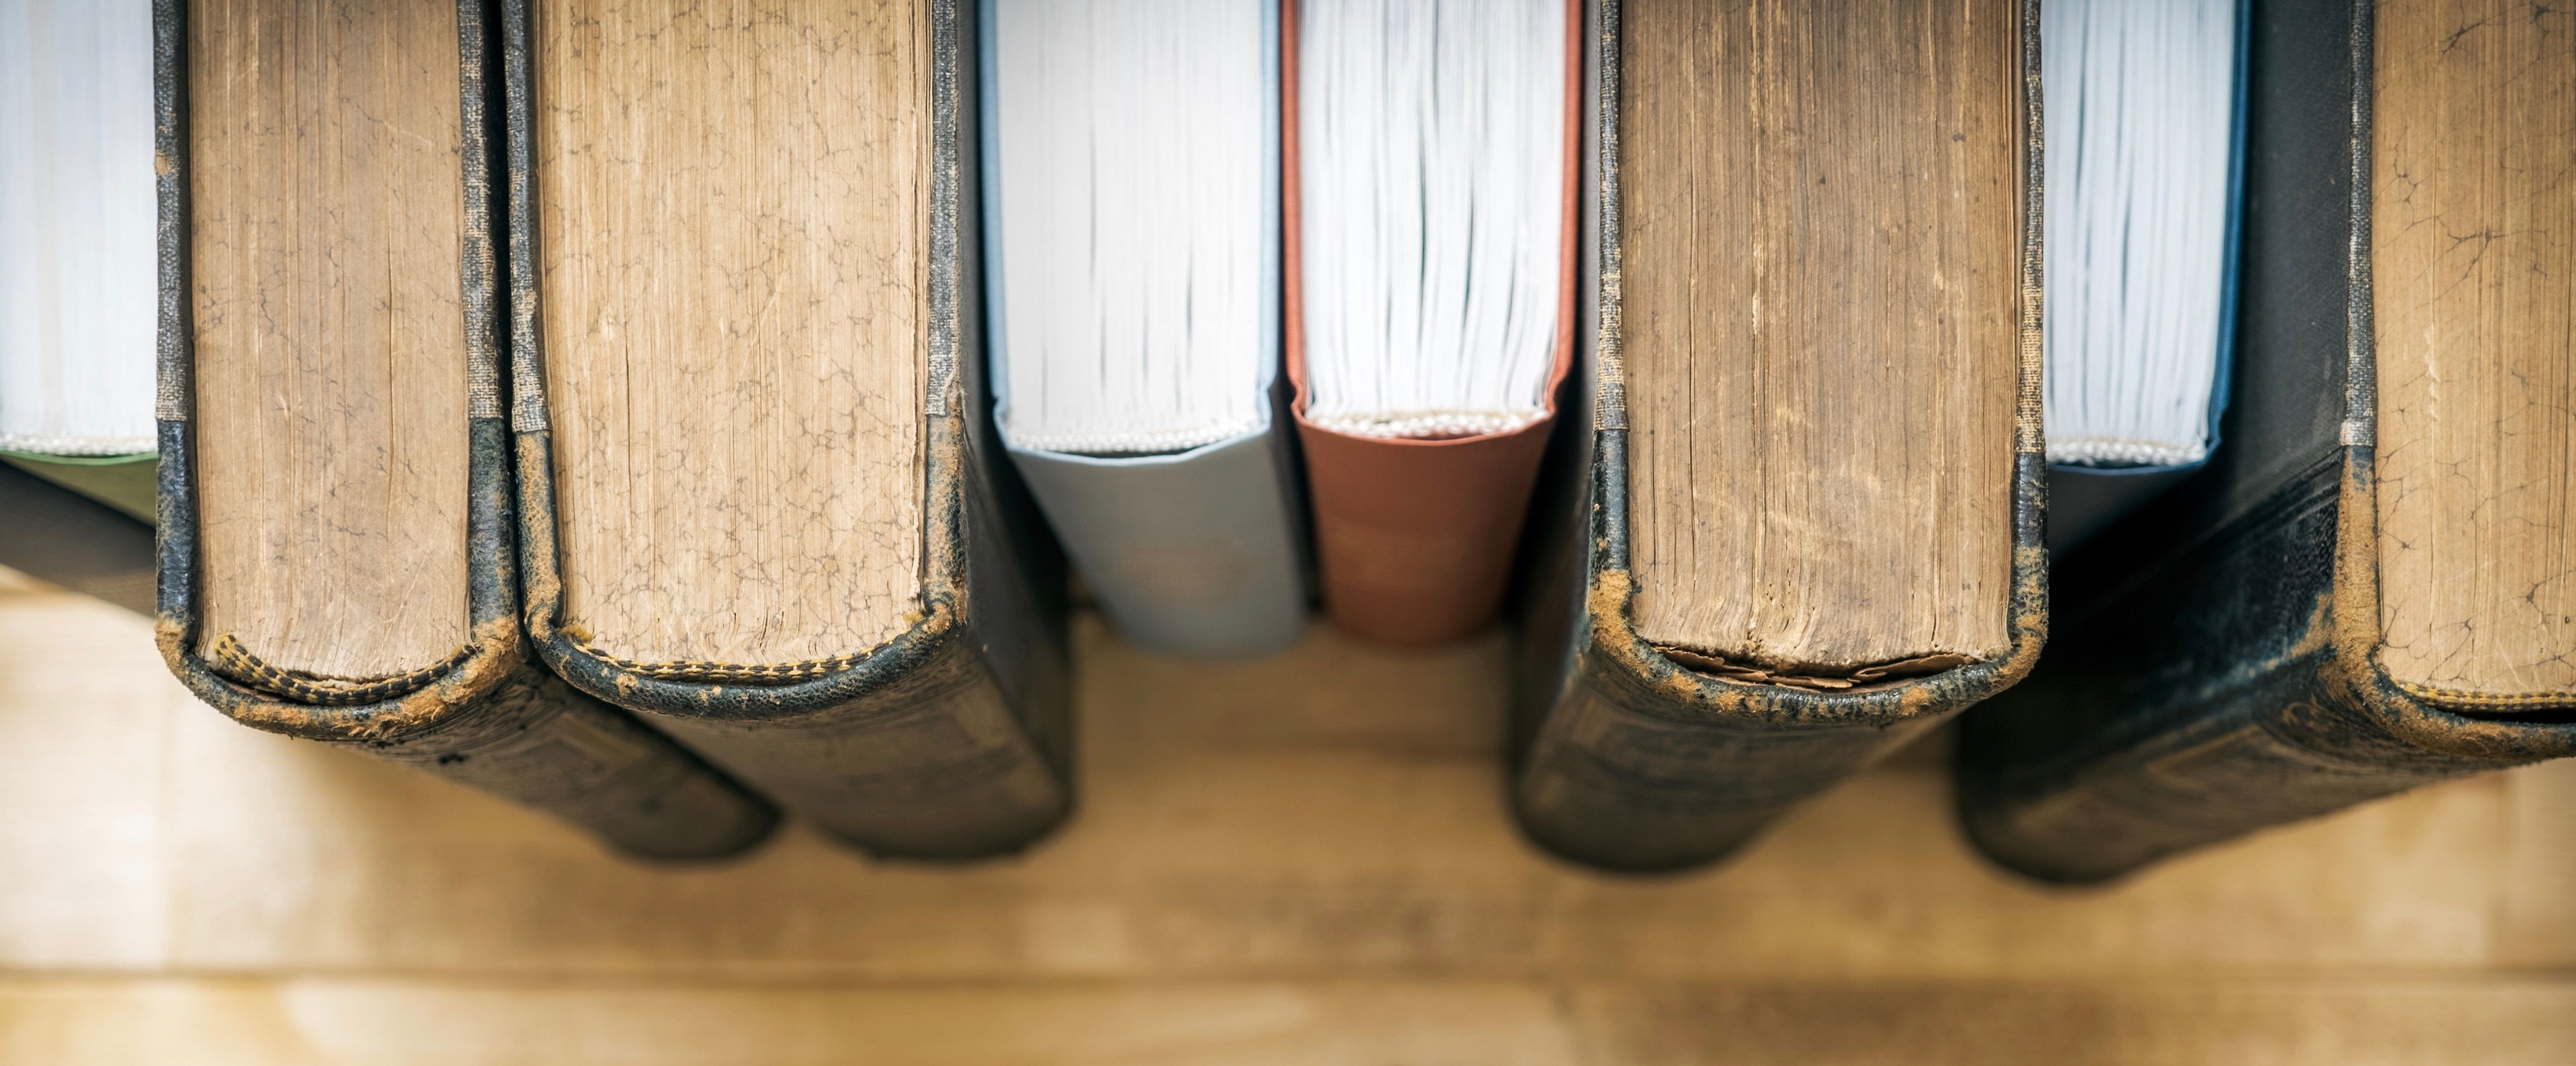 9 Marketing Books to Read Before Q1 Ends